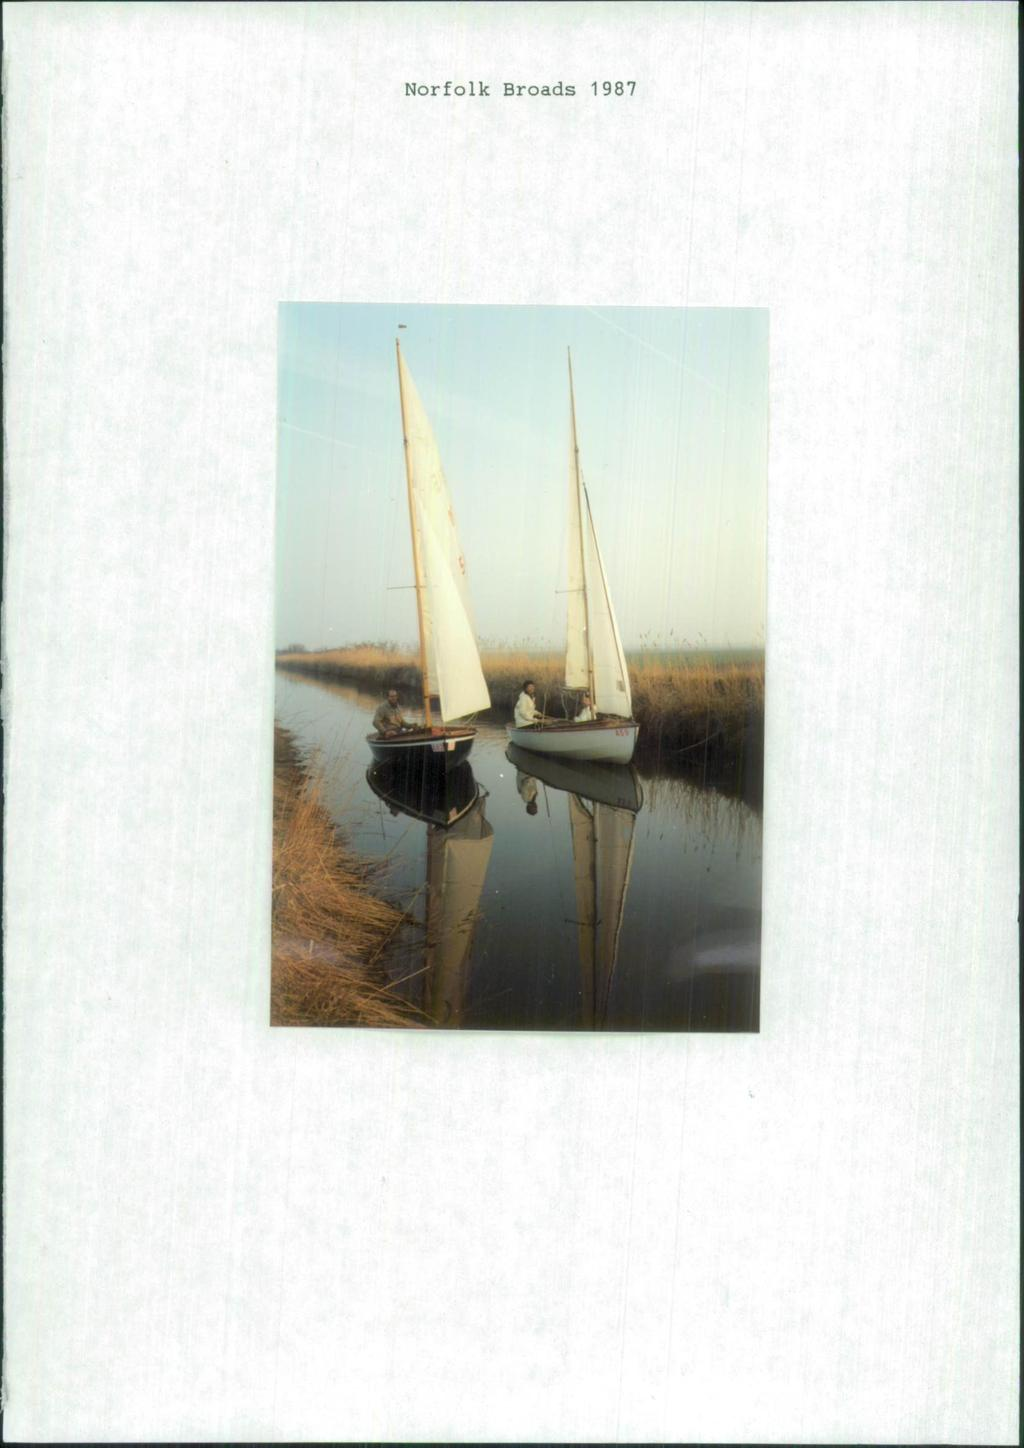 Norfolk Broads 1987 i